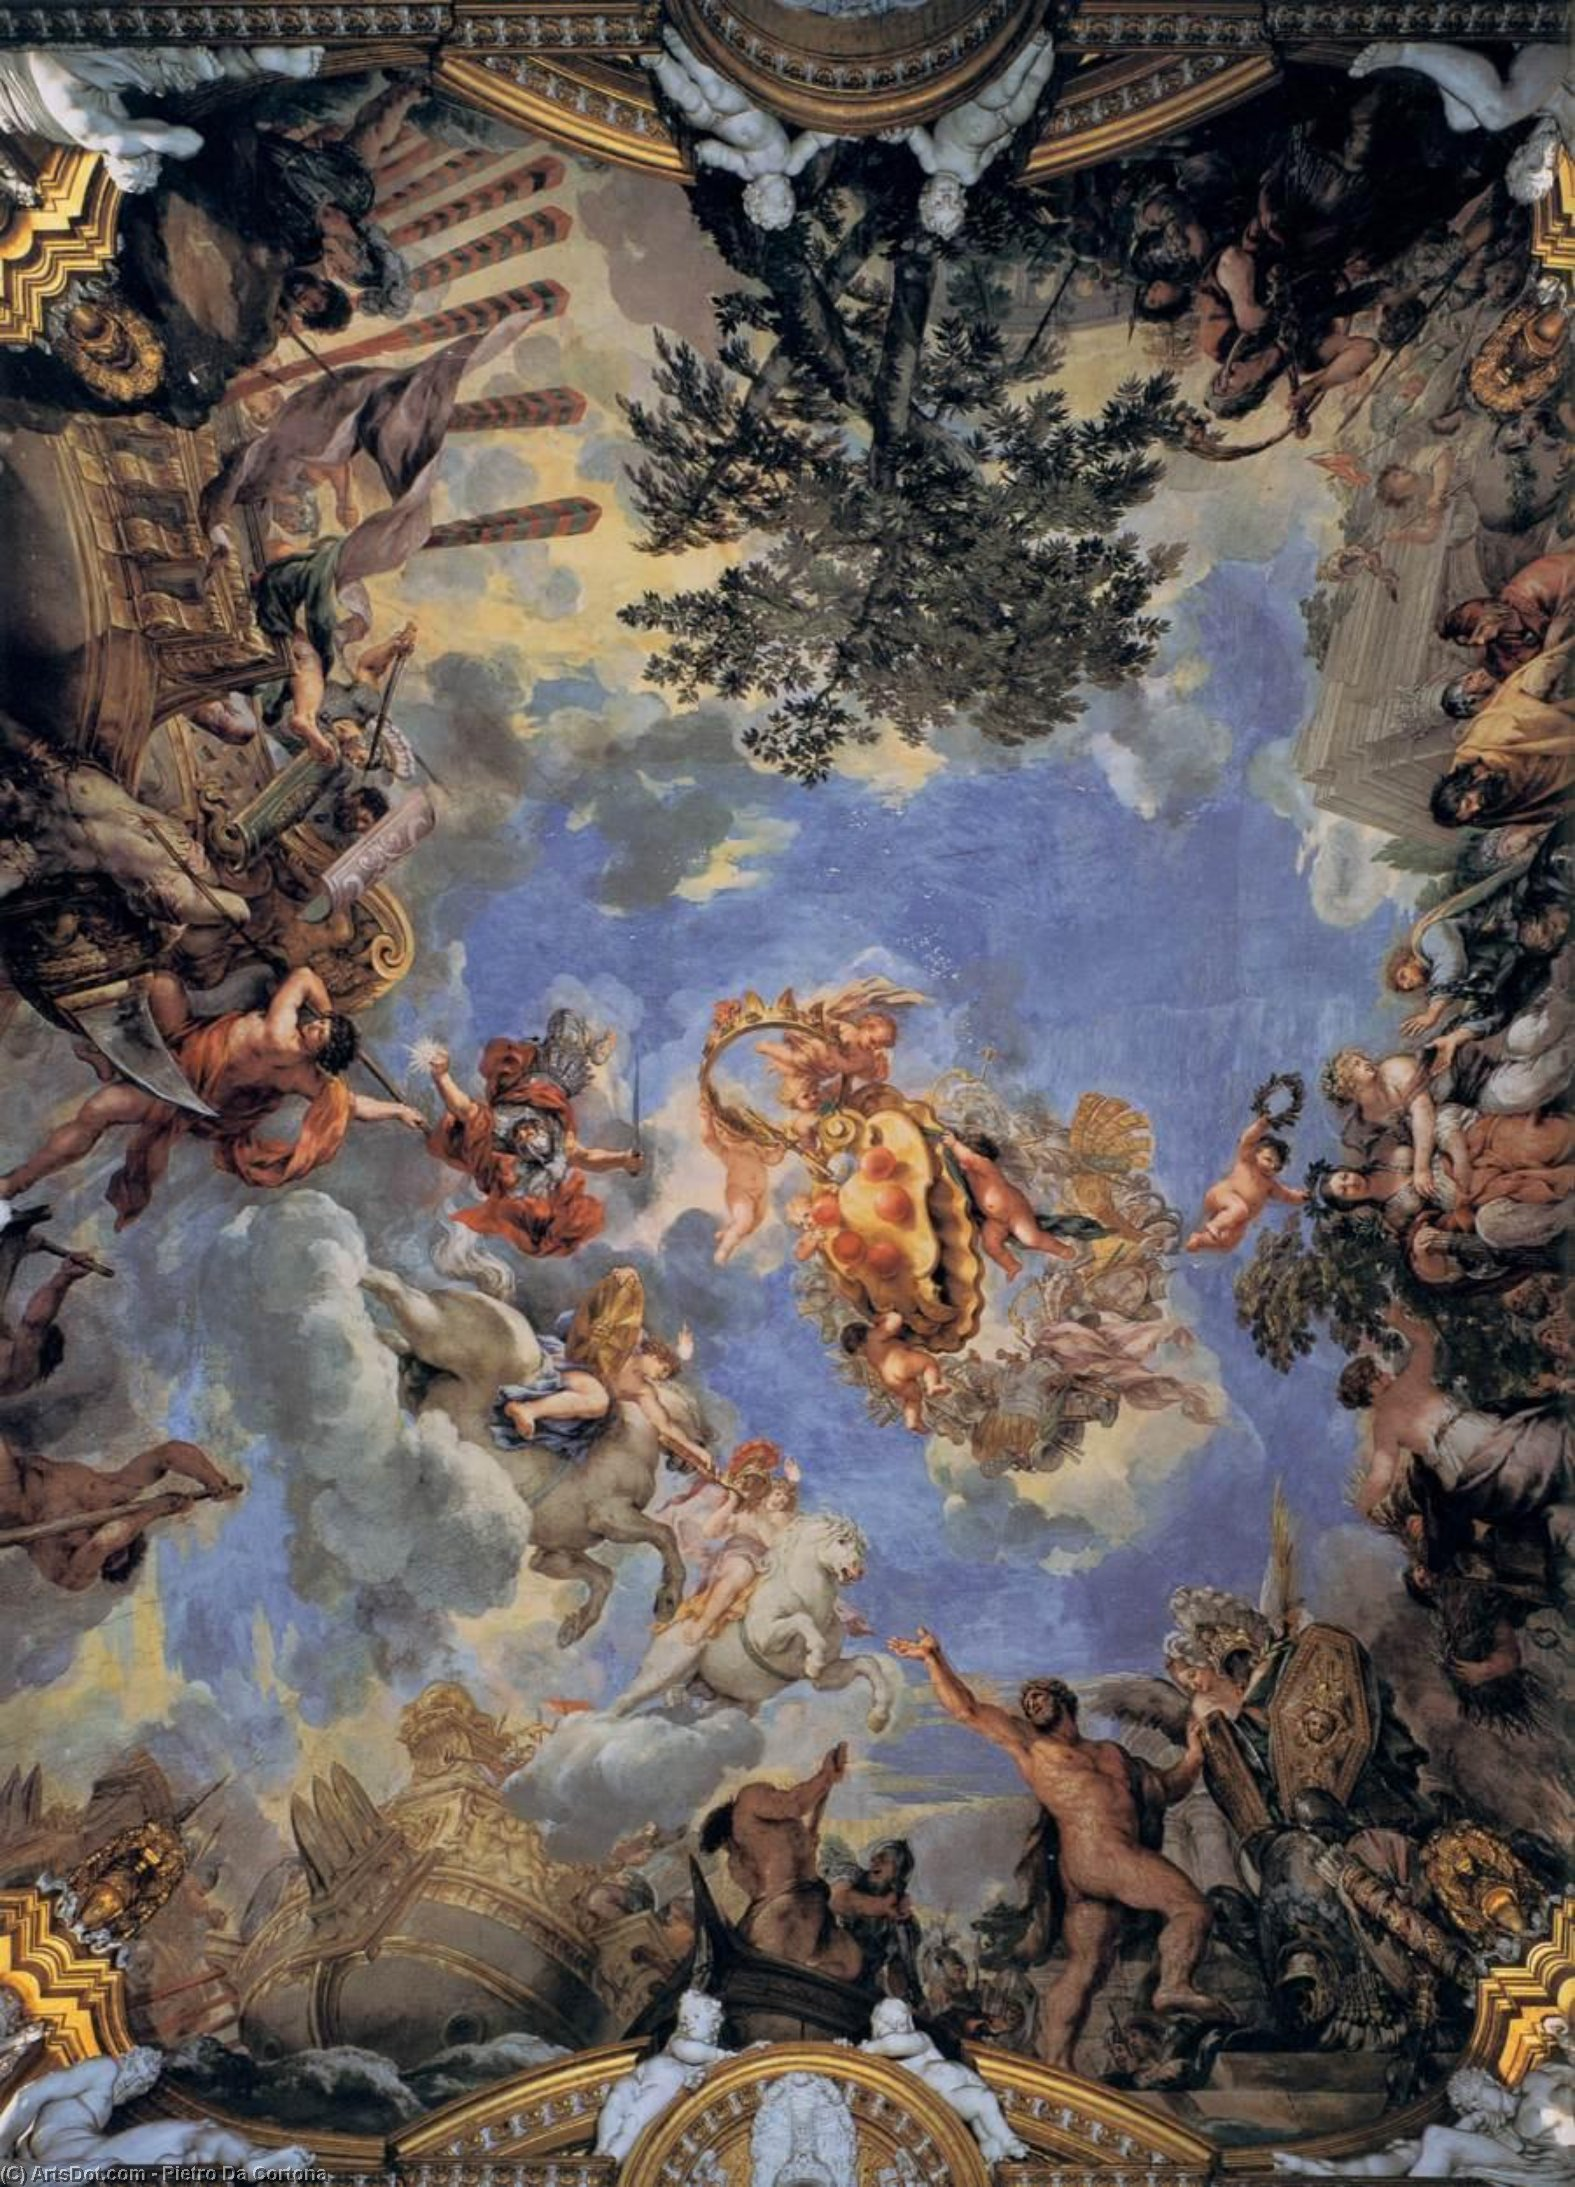 Soffitto affresco con medici coat-of-arms, affreschi di Pietro Da Cortona (1596-1669, Italy)